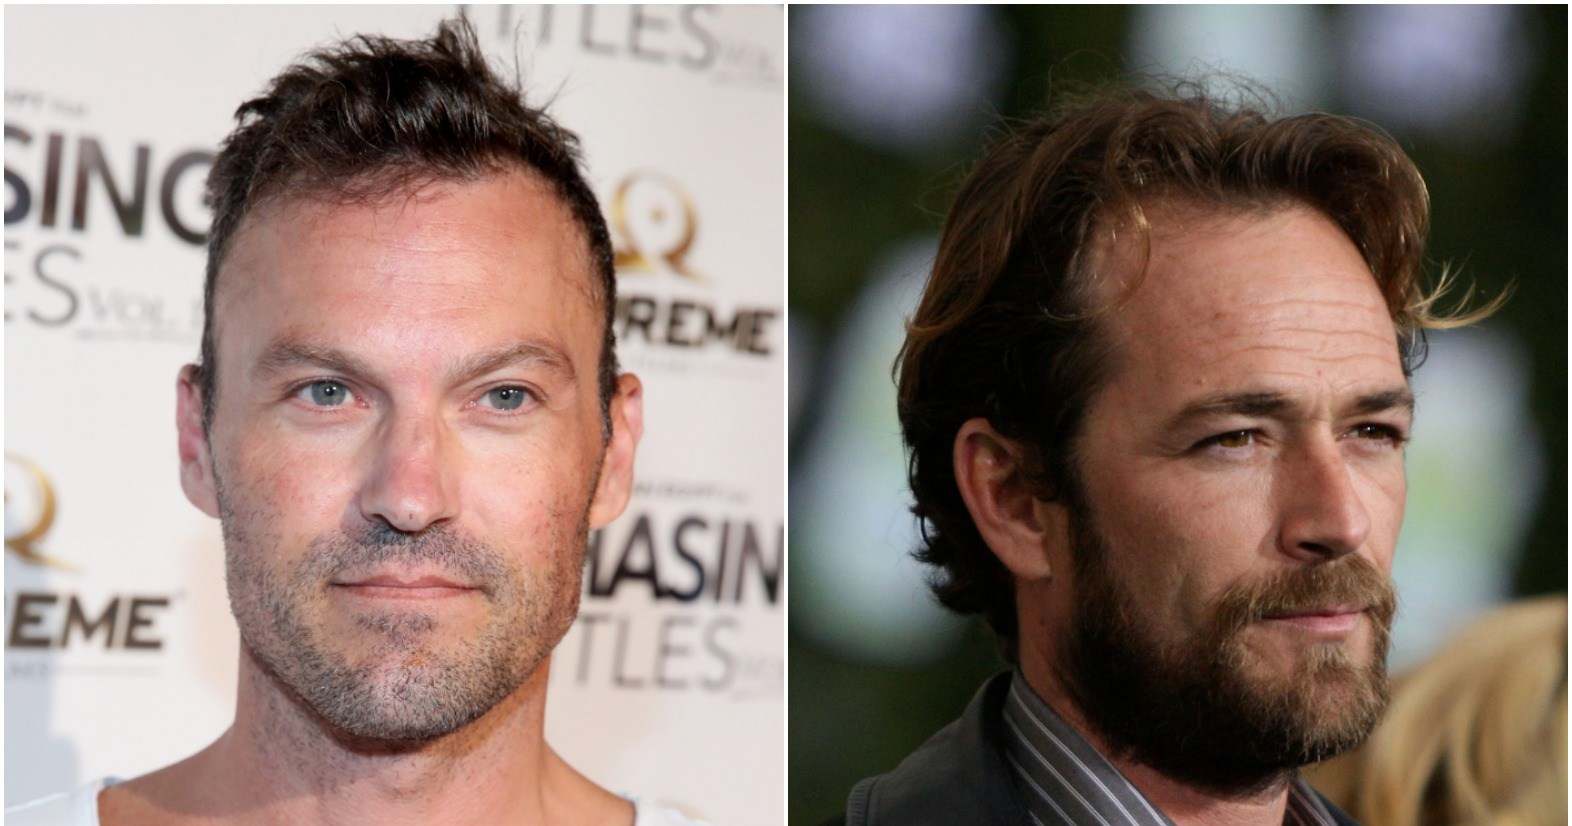 Brian Austin Green Reveals He Texted Luke Perry After His